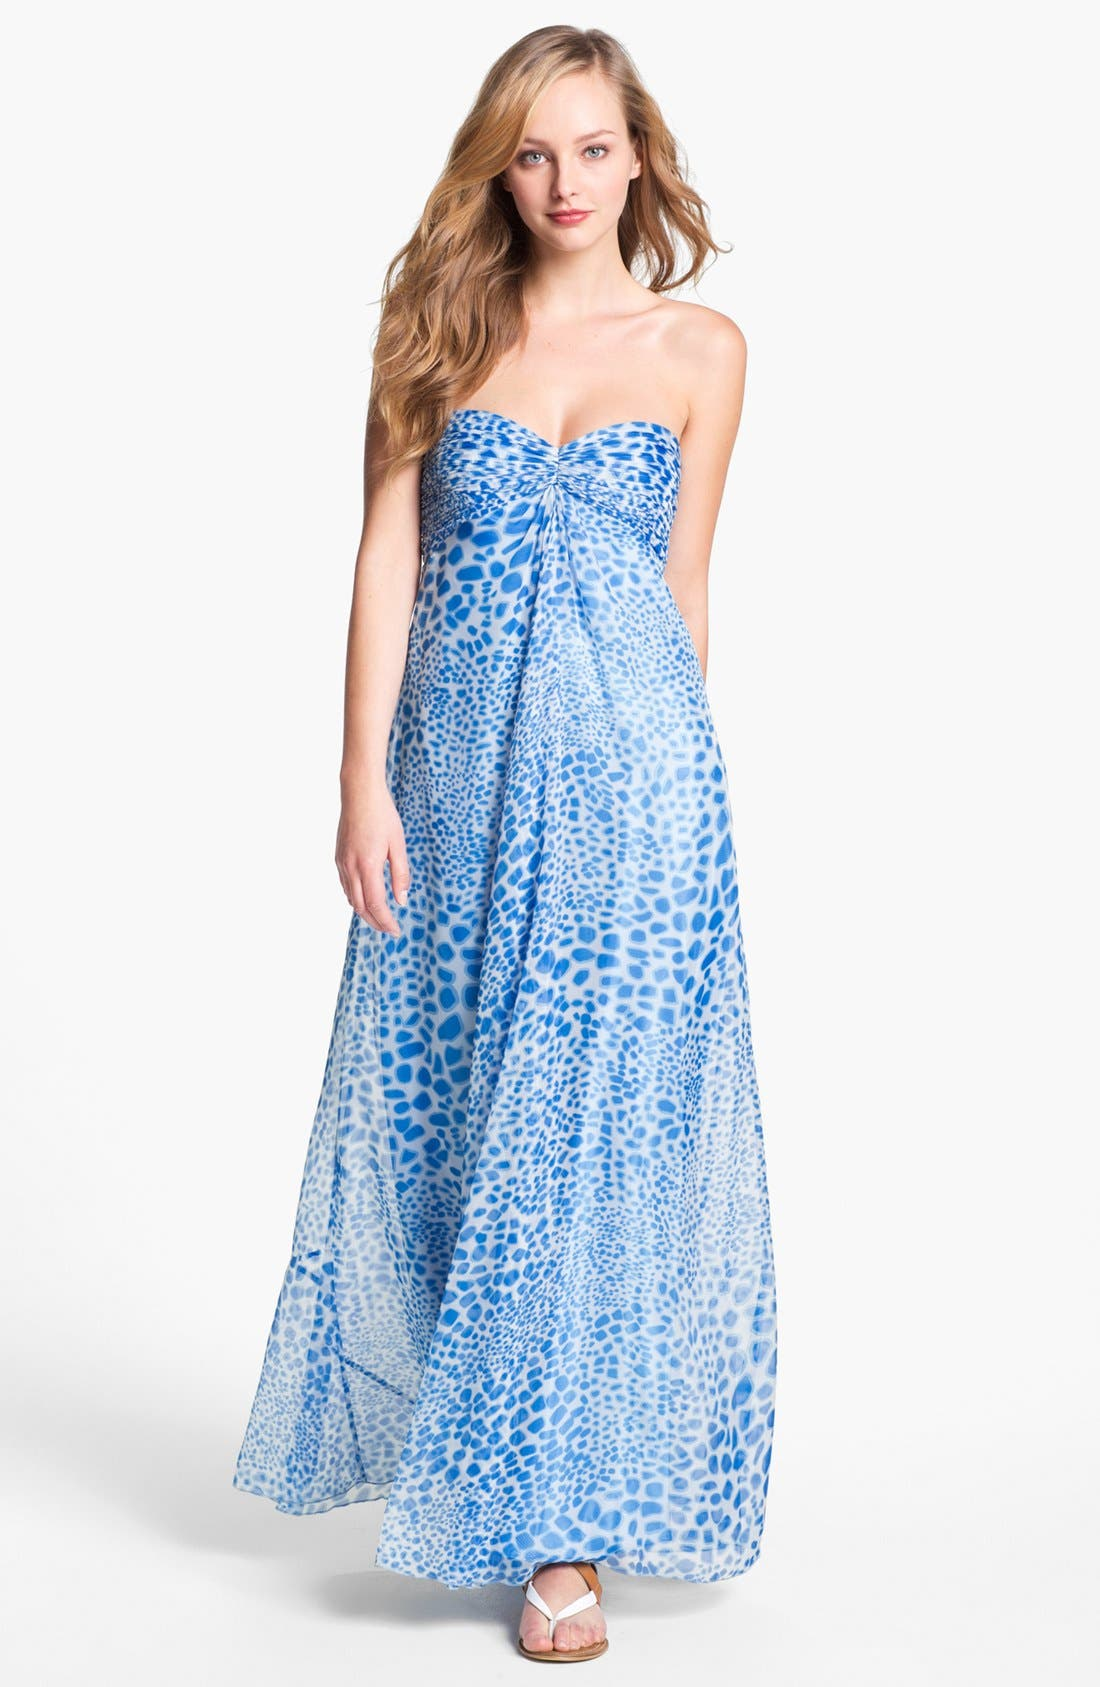 Alternate Image 1 Selected - Laundry by Shelli Segal Print Chiffon Gown